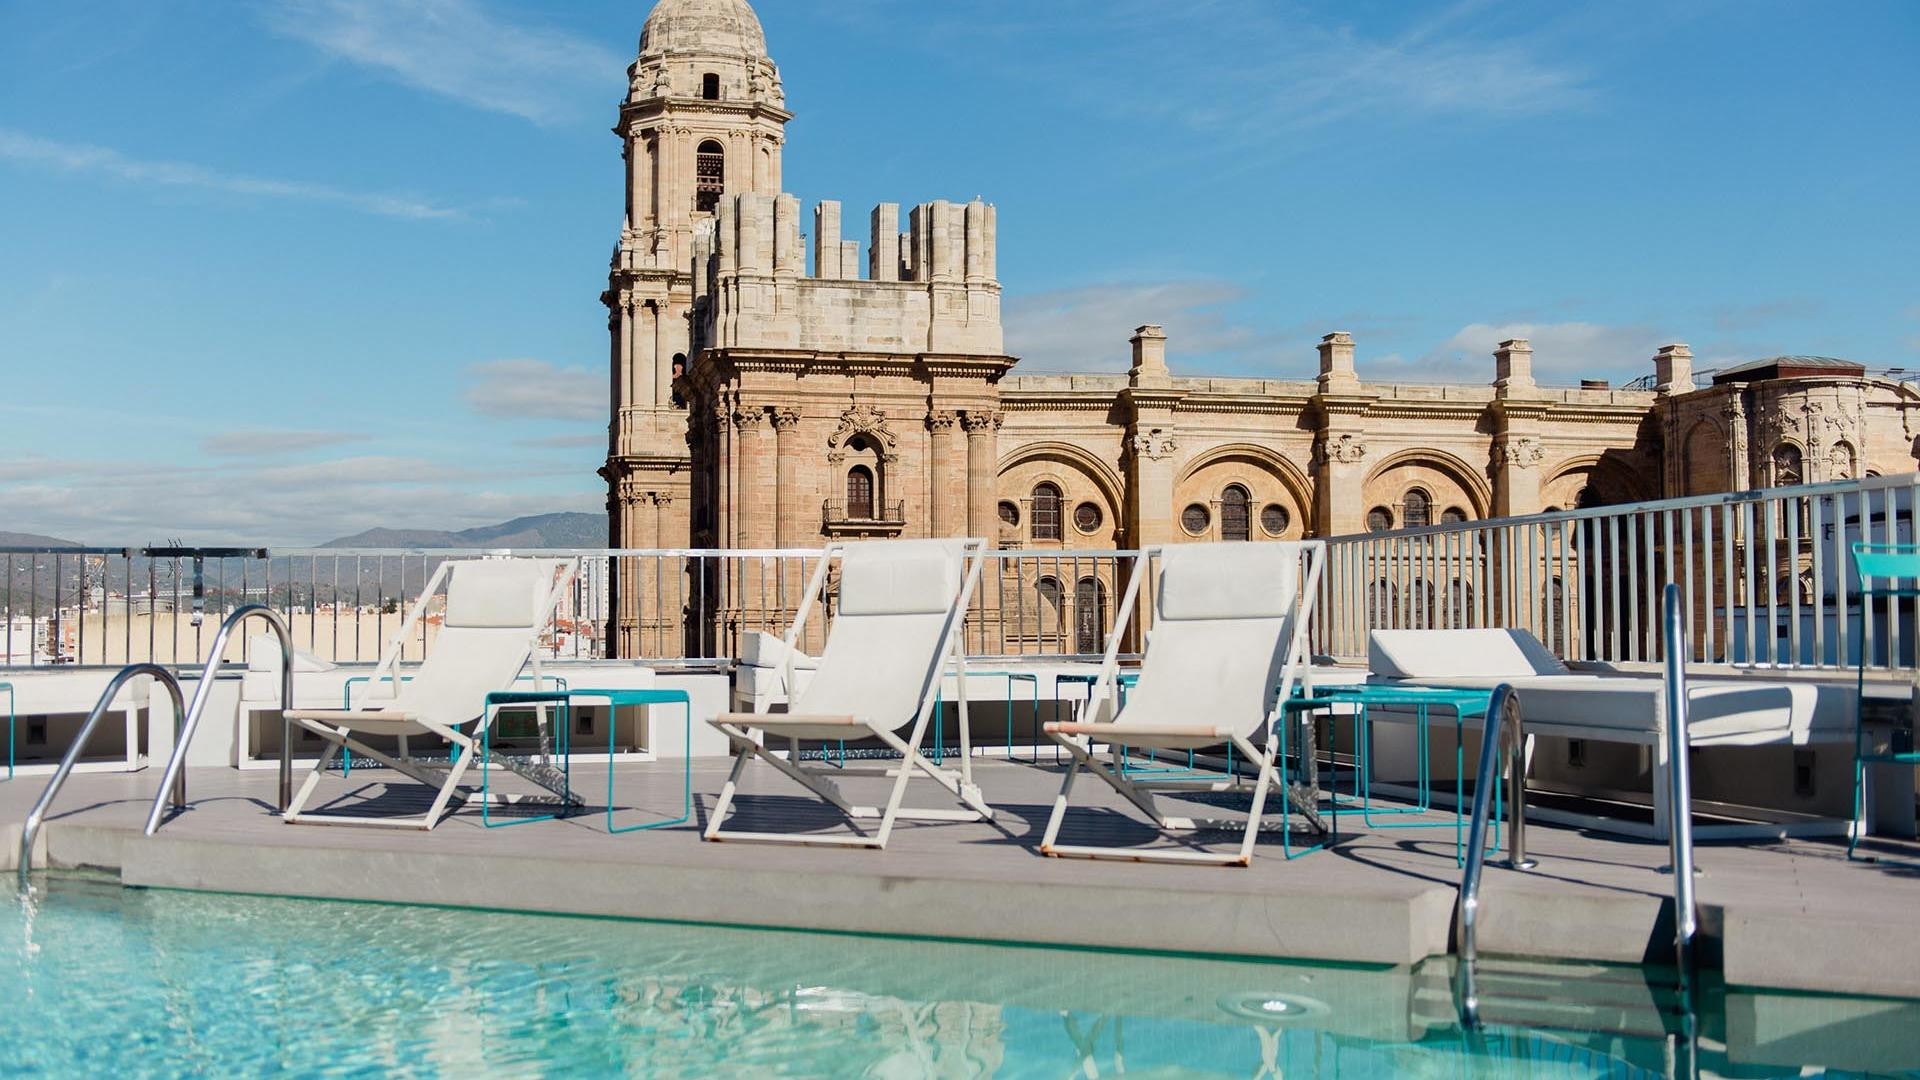 The TOP Pool with Cathedral View